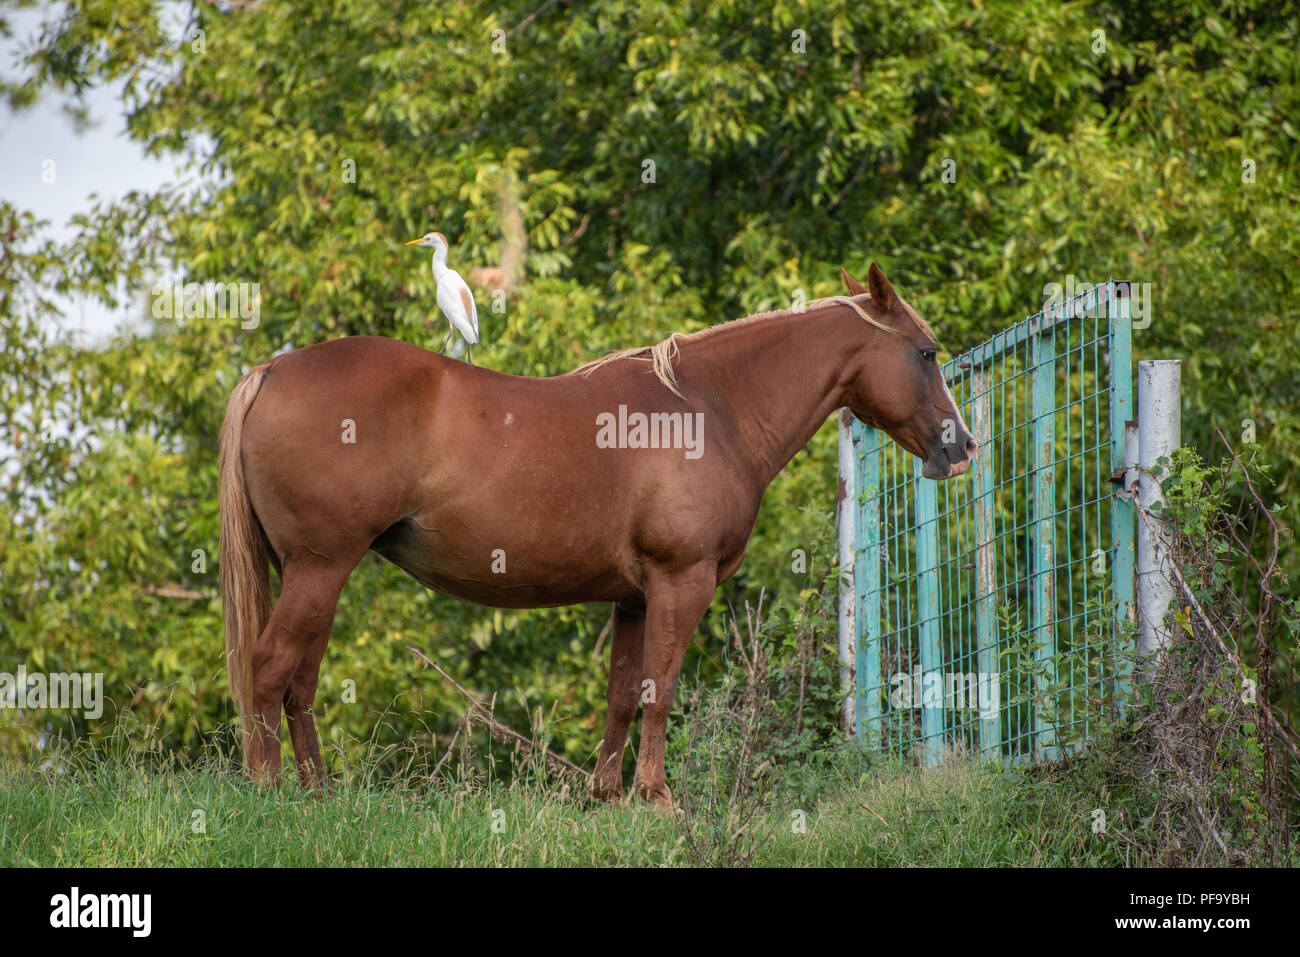 A horse shows no concern that a cattle egret is perched on her. - Stock Image